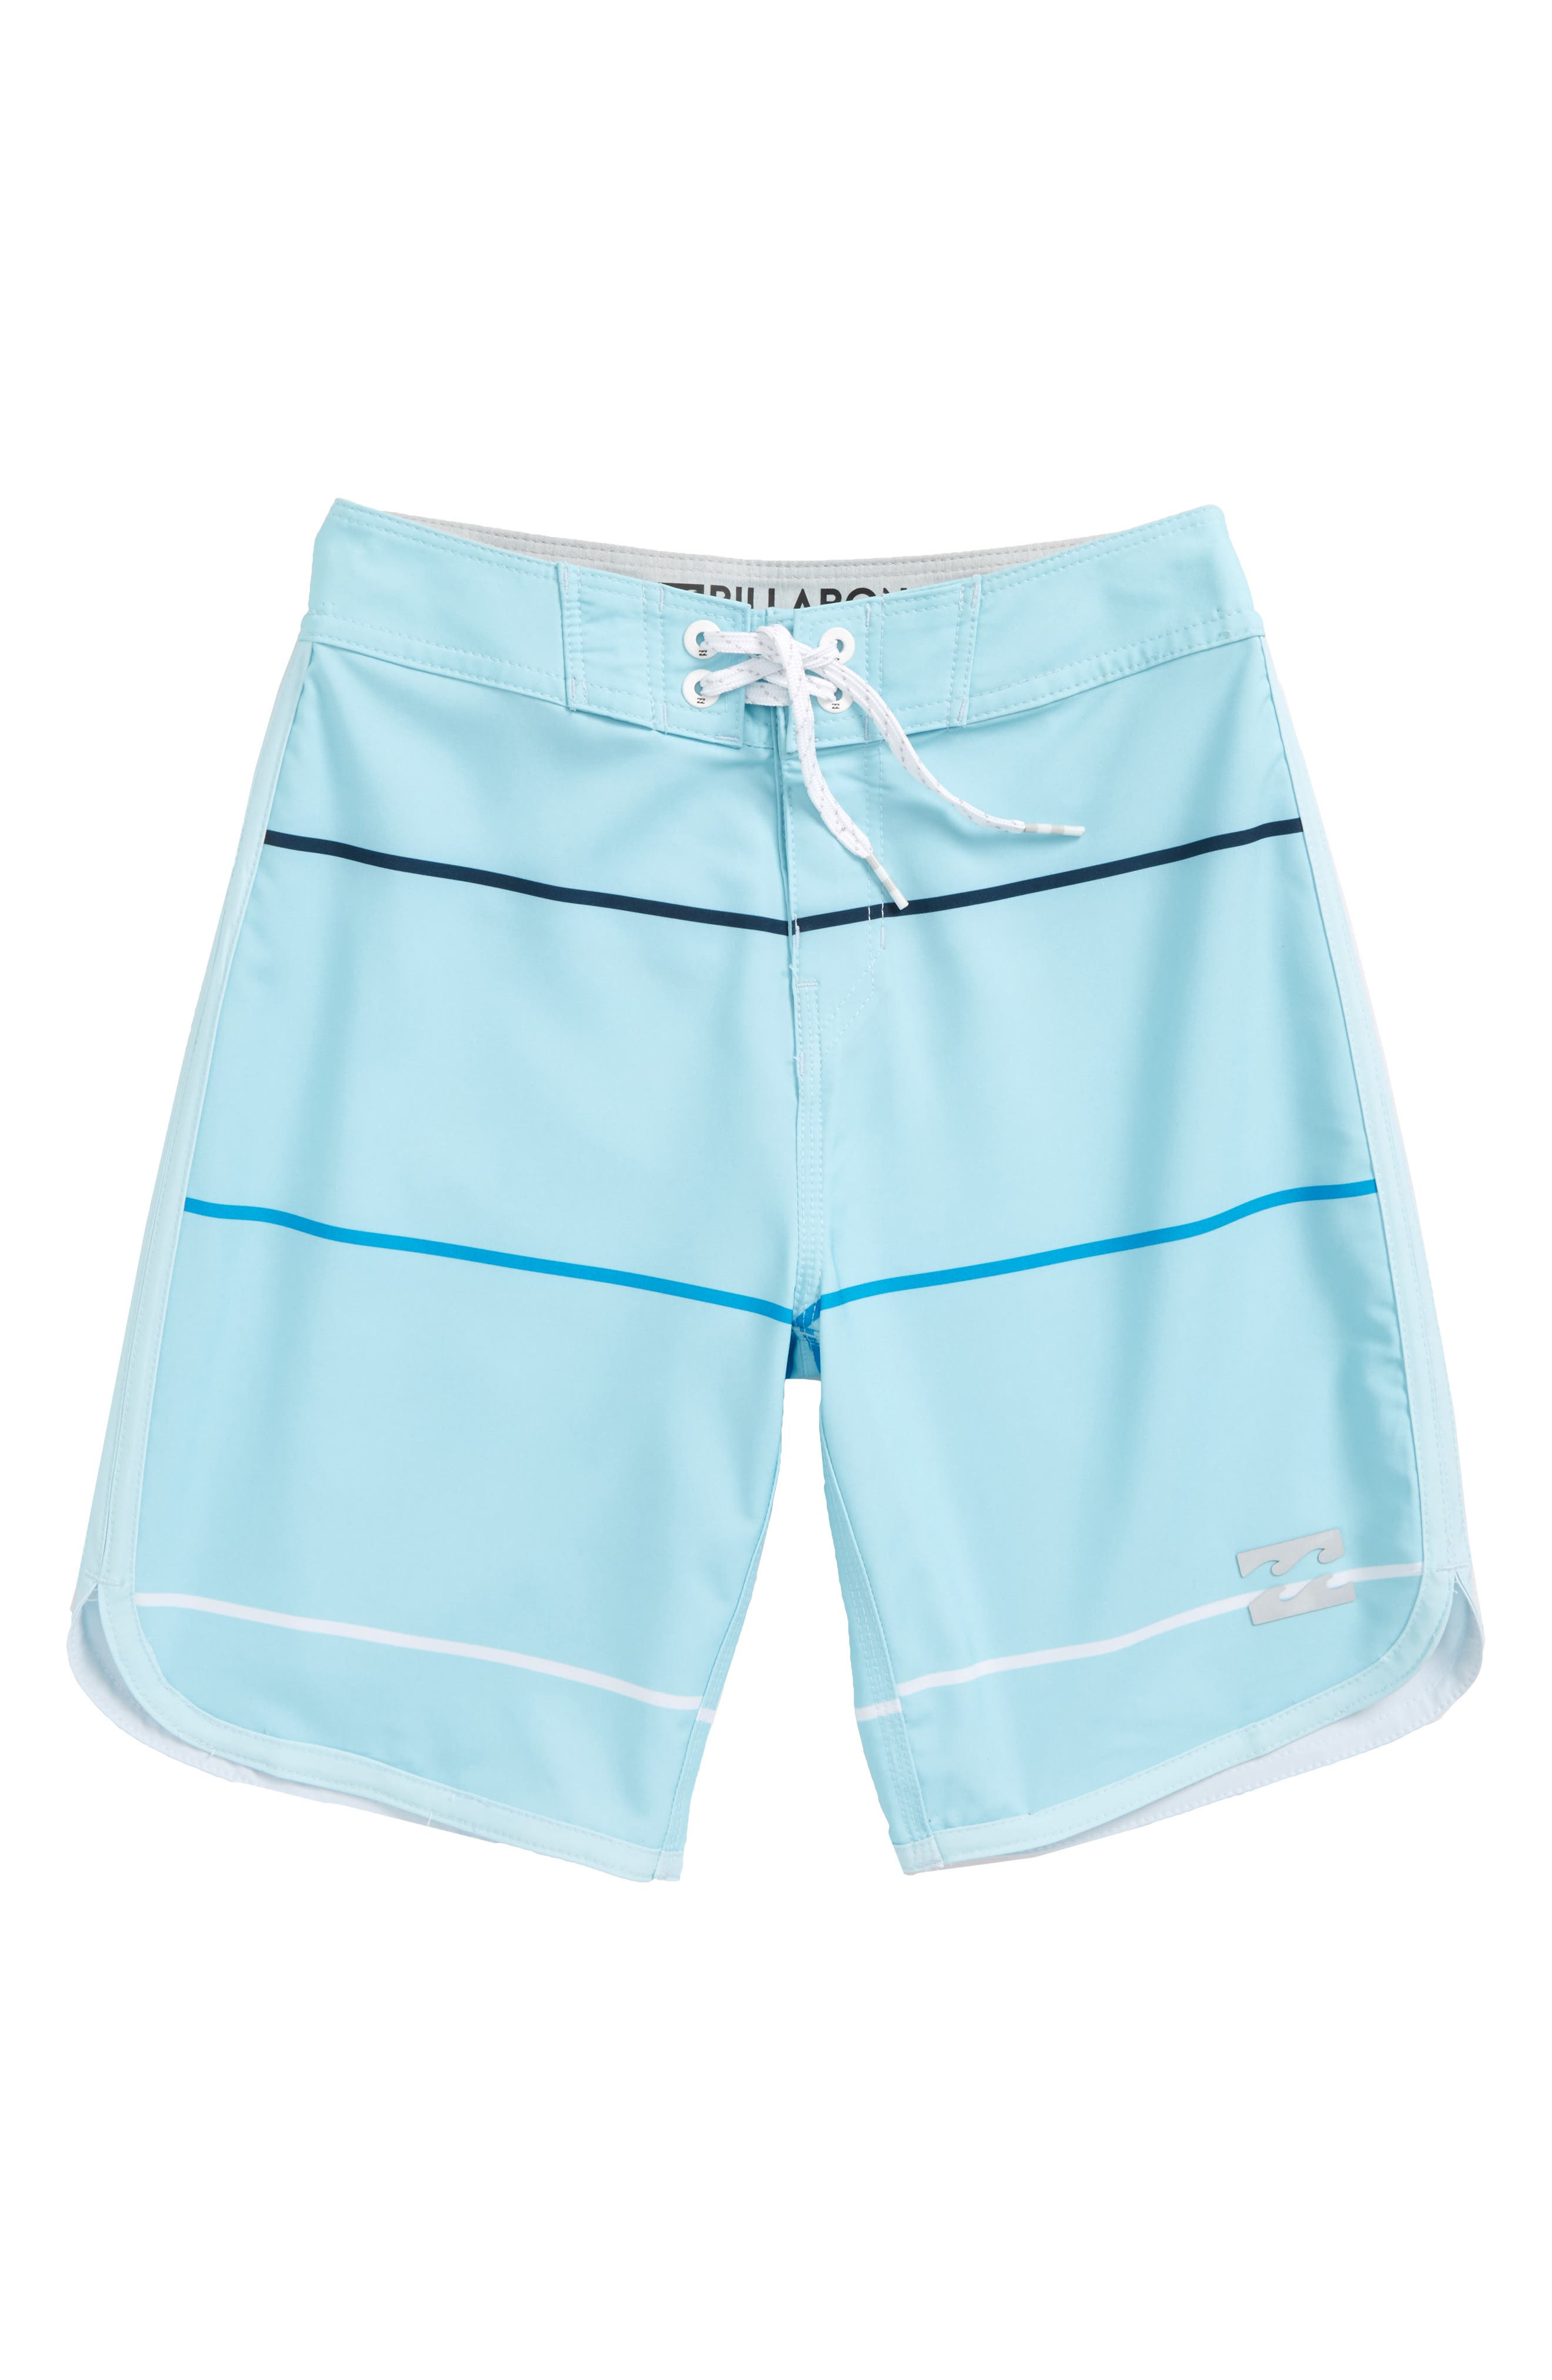 73 X Stripe Board Shorts,                         Main,                         color, 454